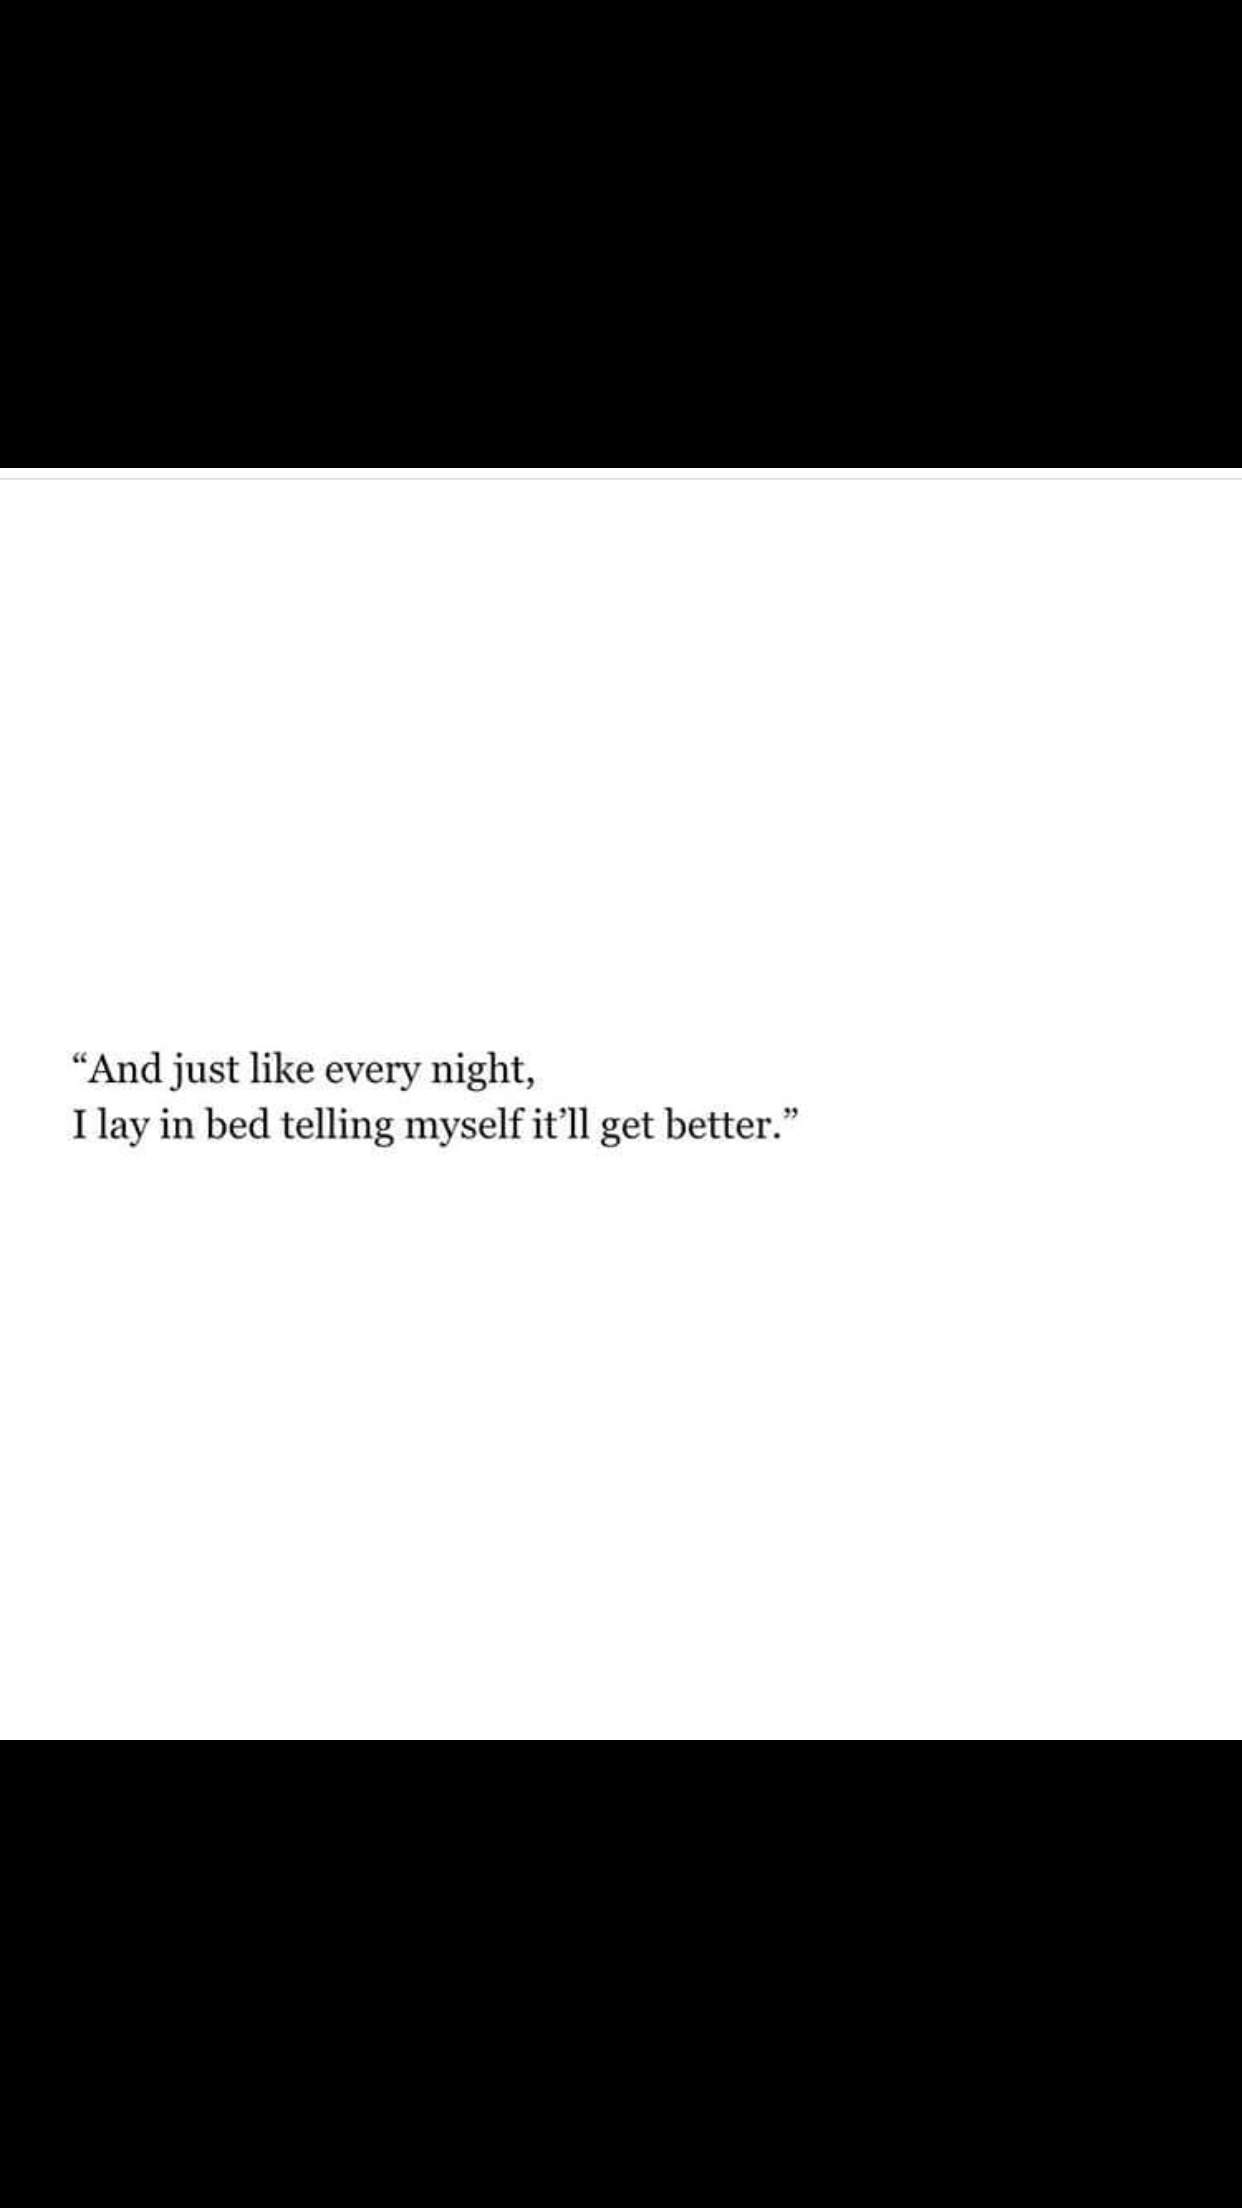 Pinterest: morgancphillips And just like every night I lay in bed telling myself it'll get better #quotes #words #relationships #love #happiness #sad #lonely #life #eyeshaveit